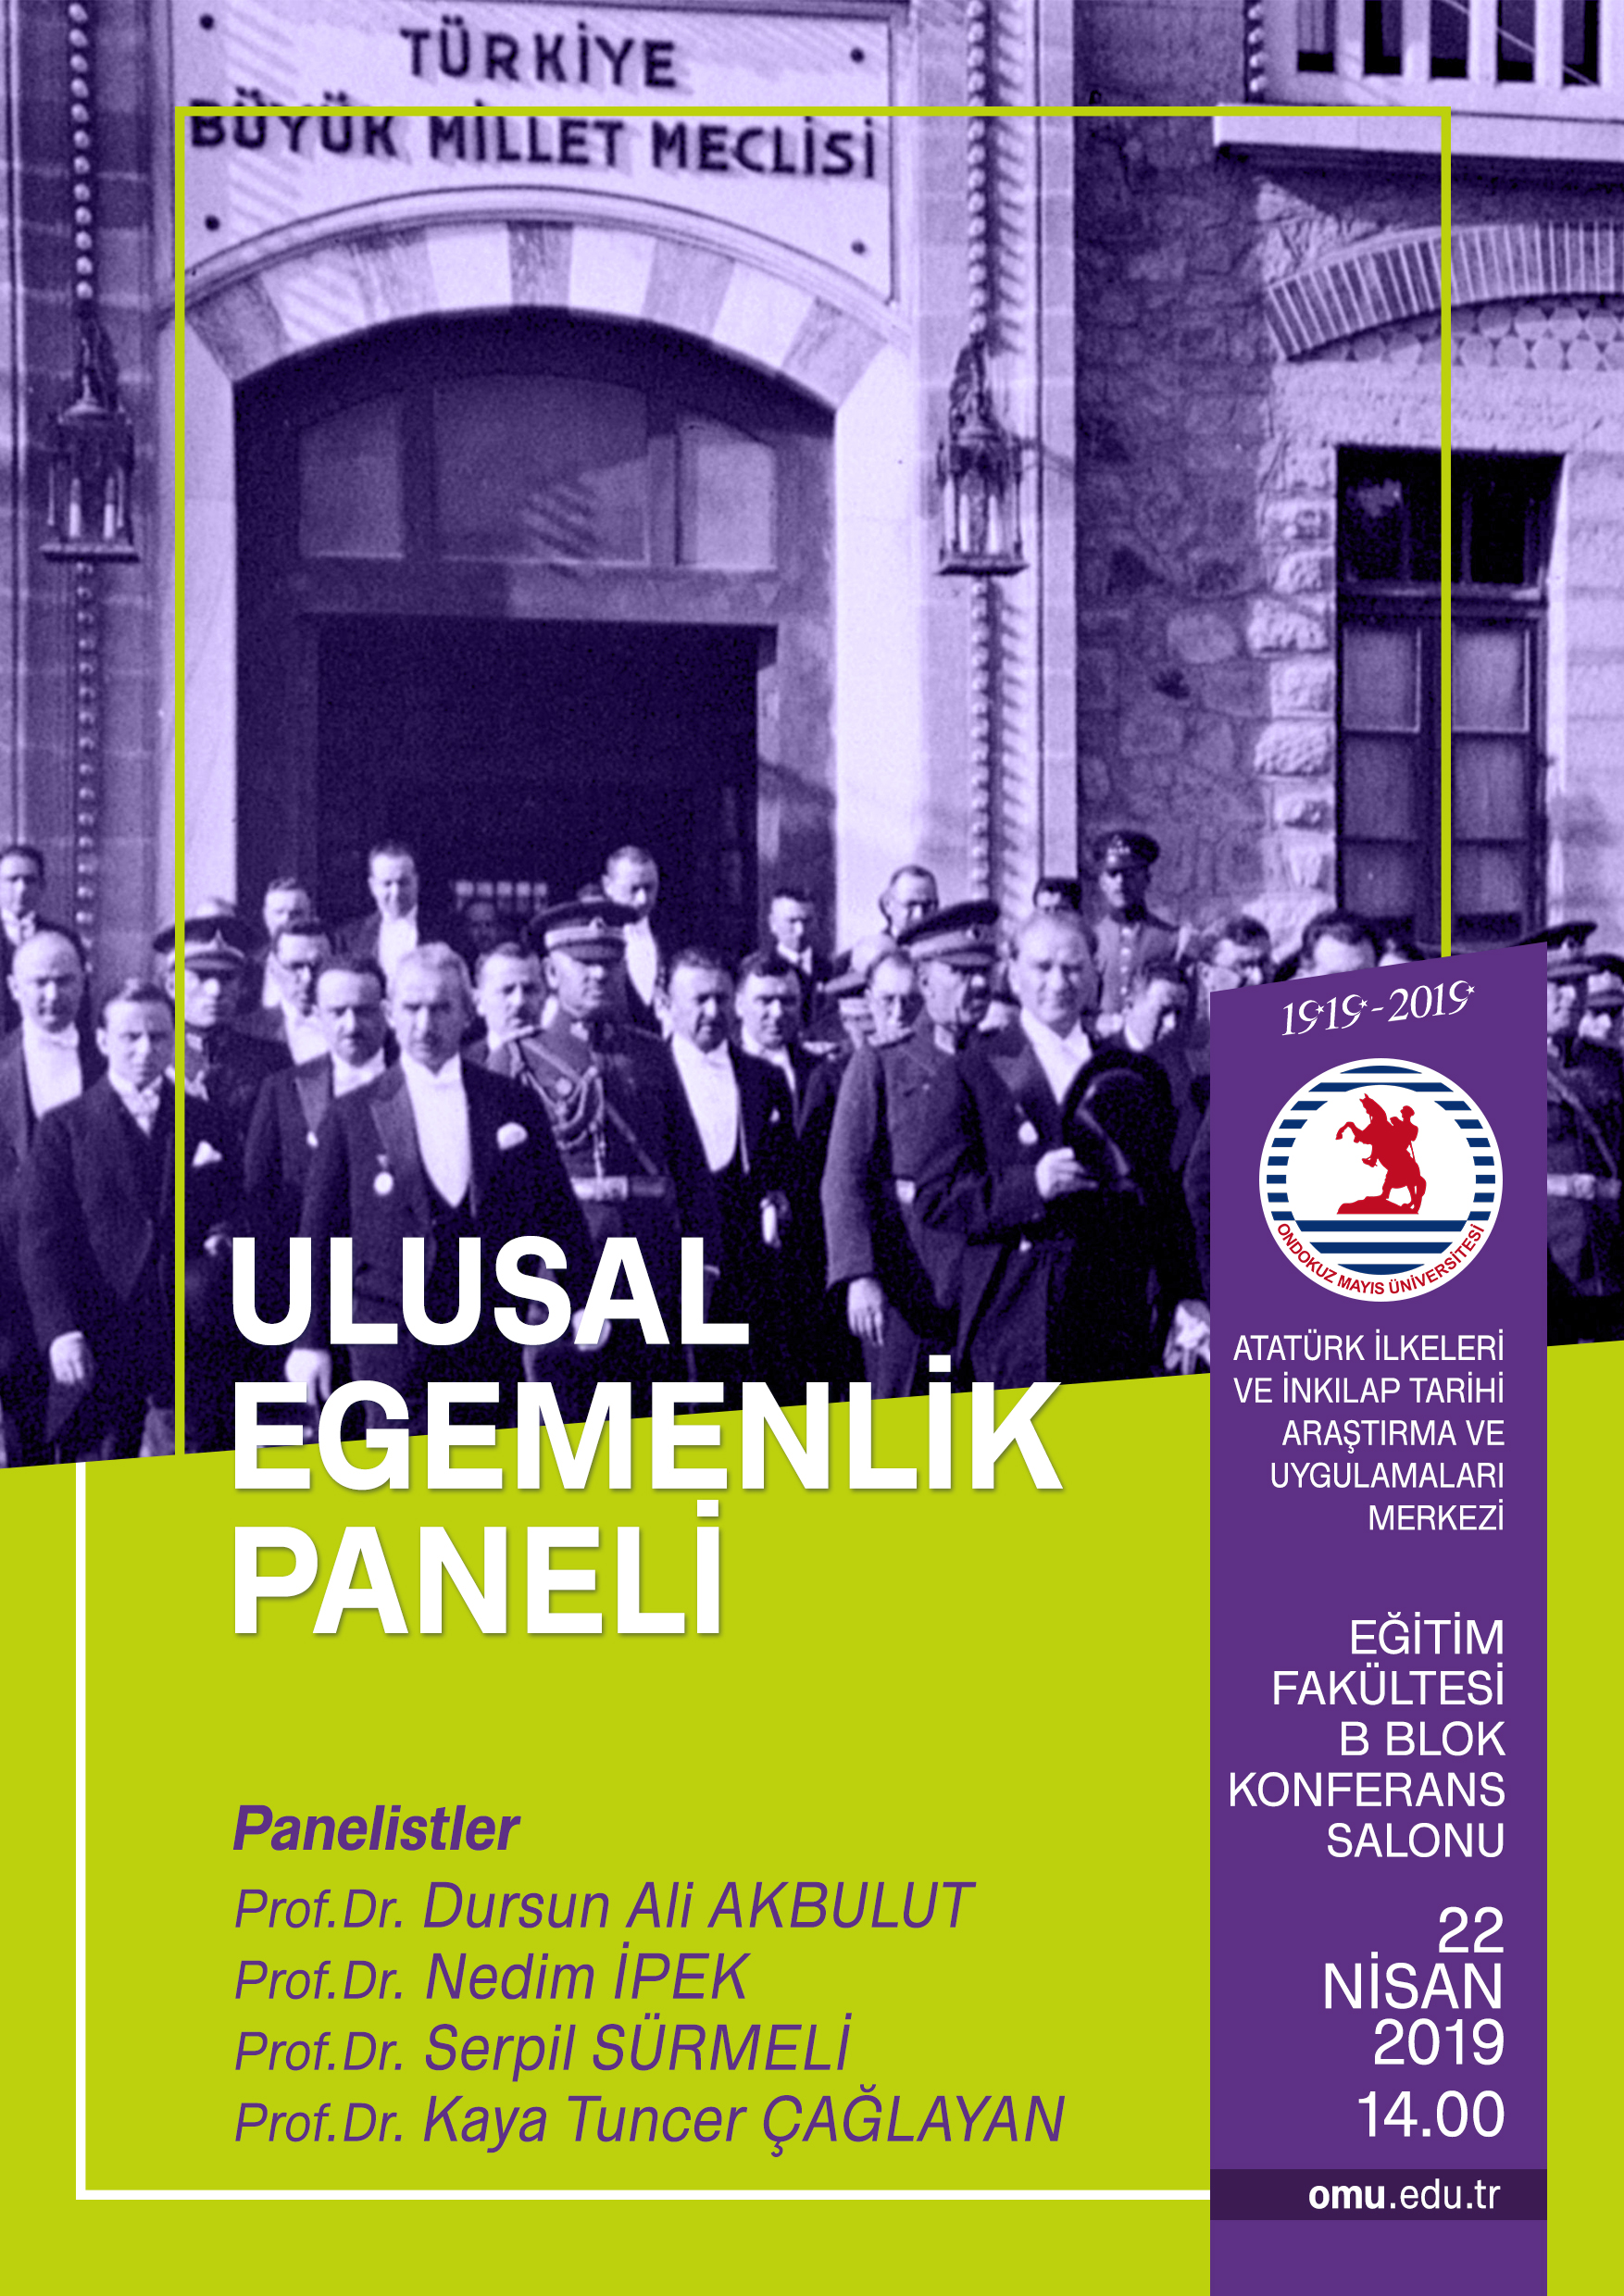 http://www.omu.edu.tr/sites/default/files/ulusalegemenlikpaneli.jpg